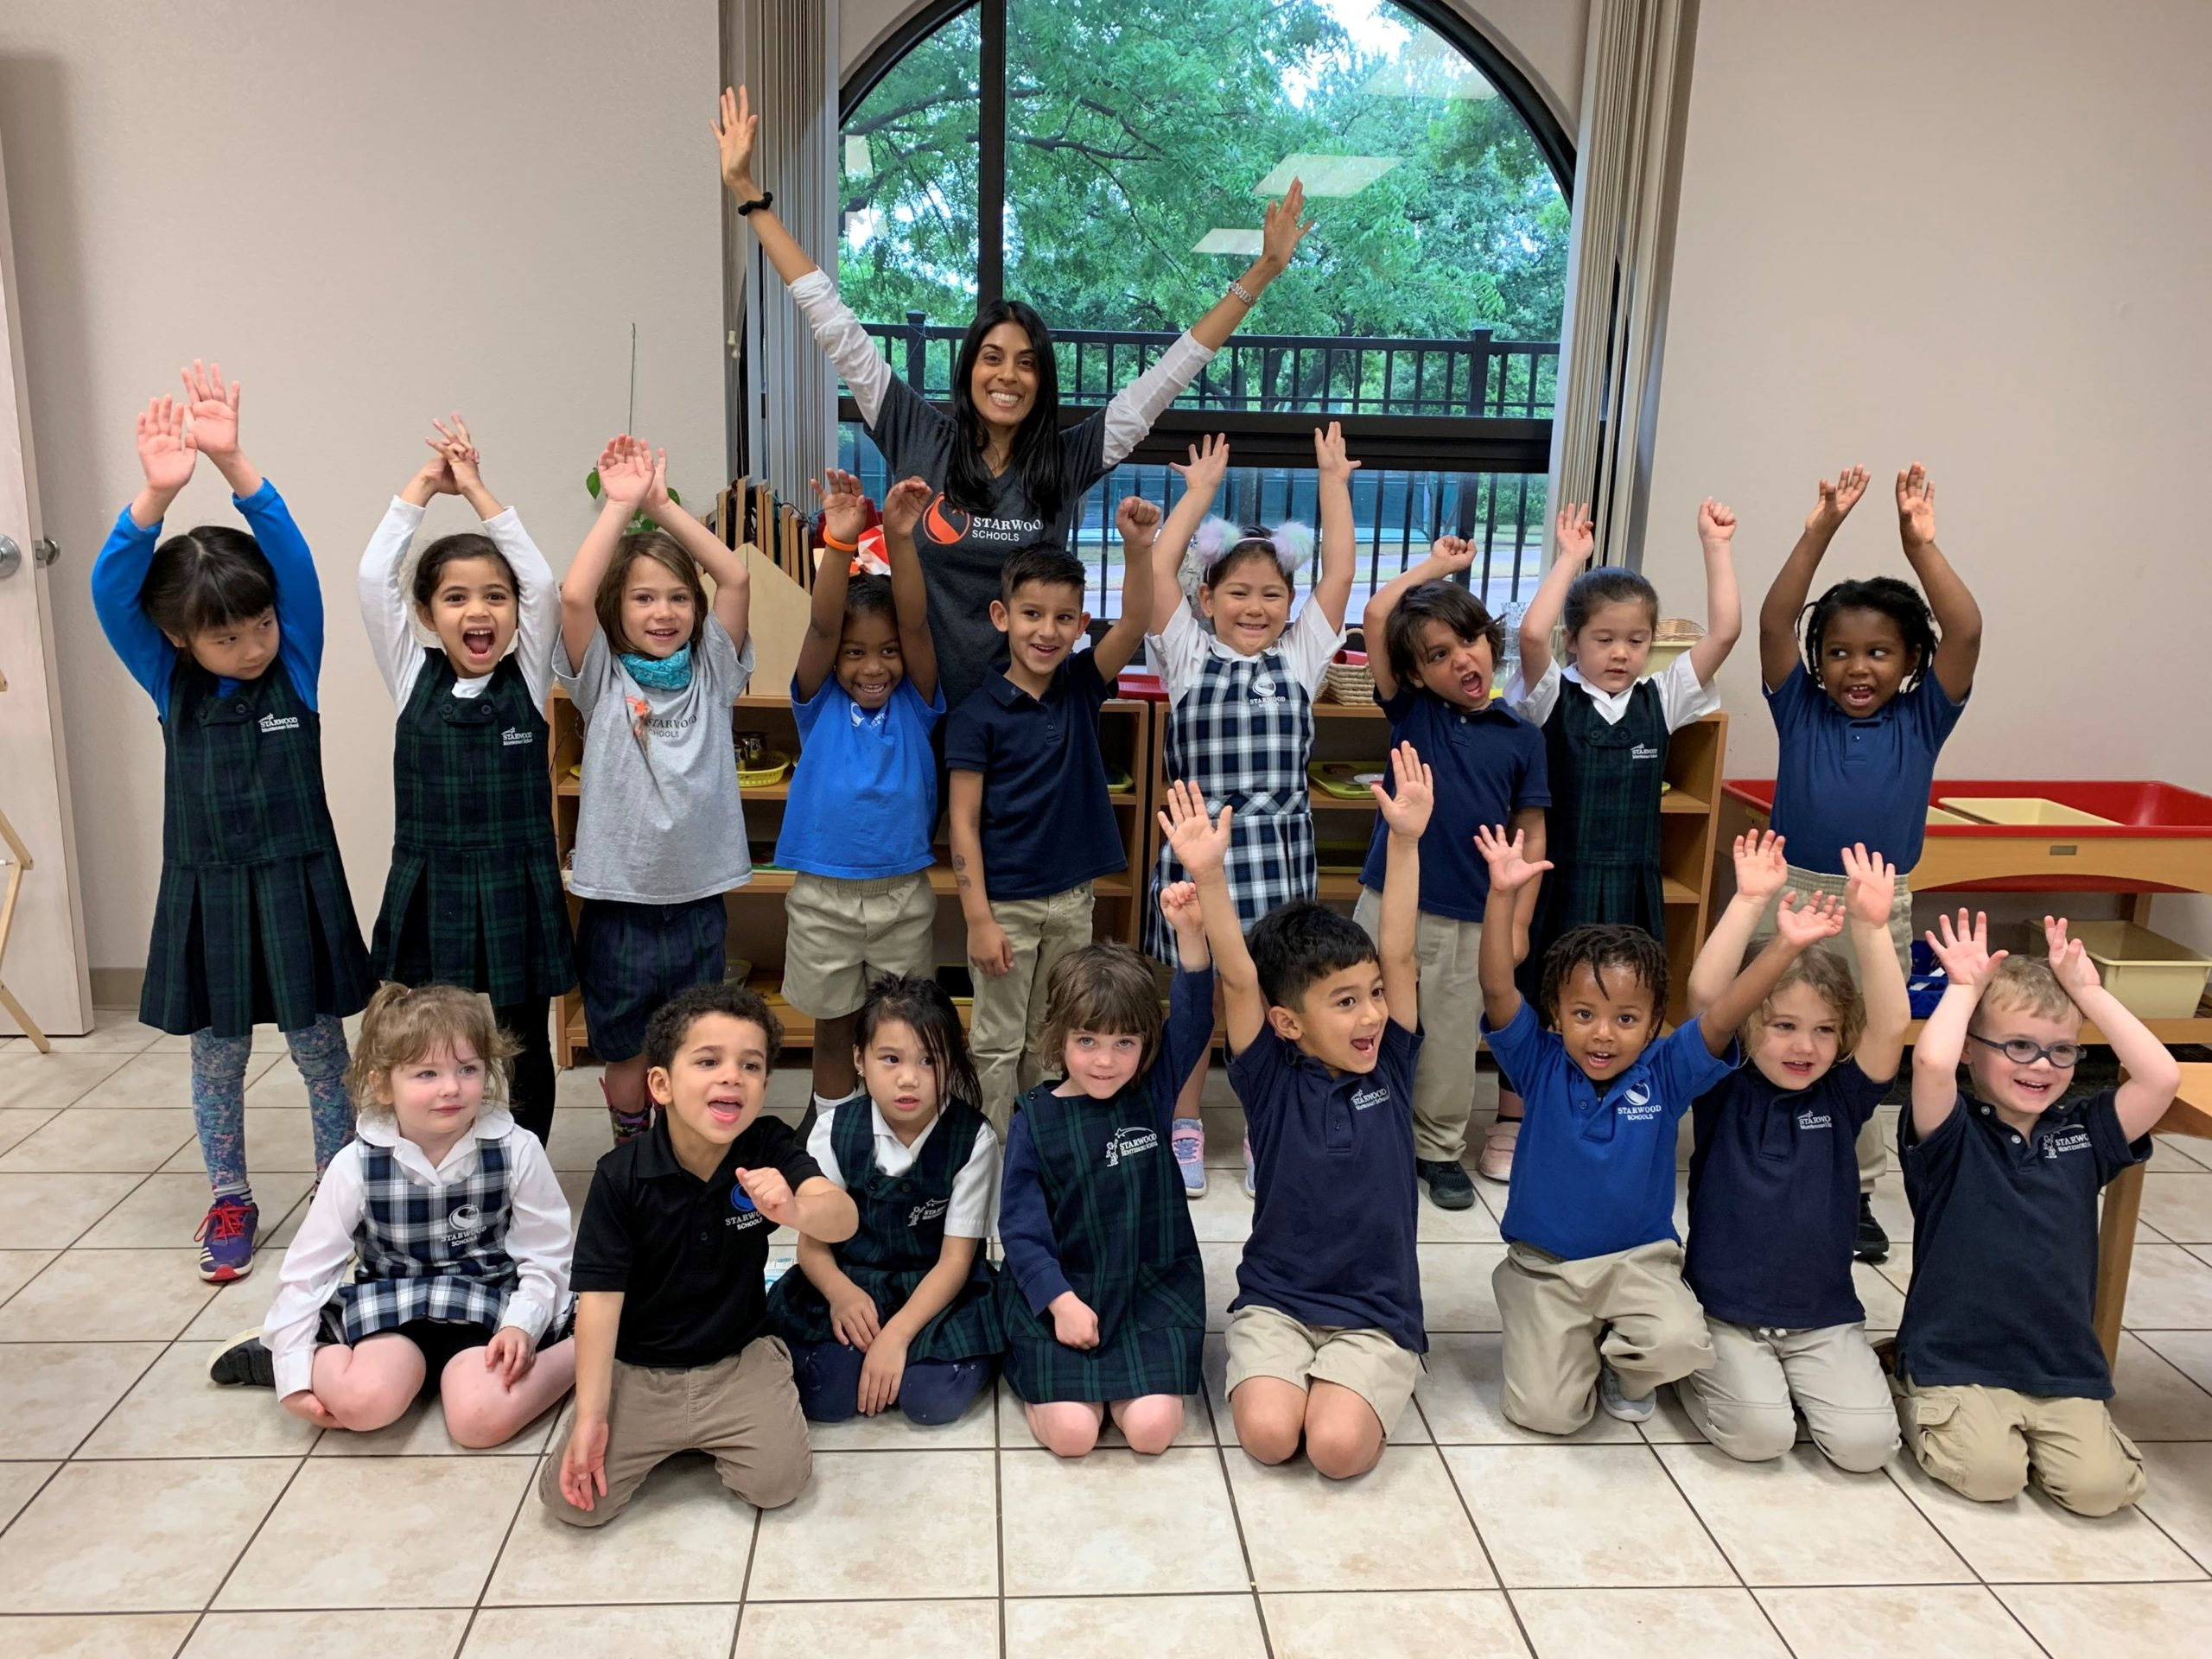 Ms. Hanks with Primary Students